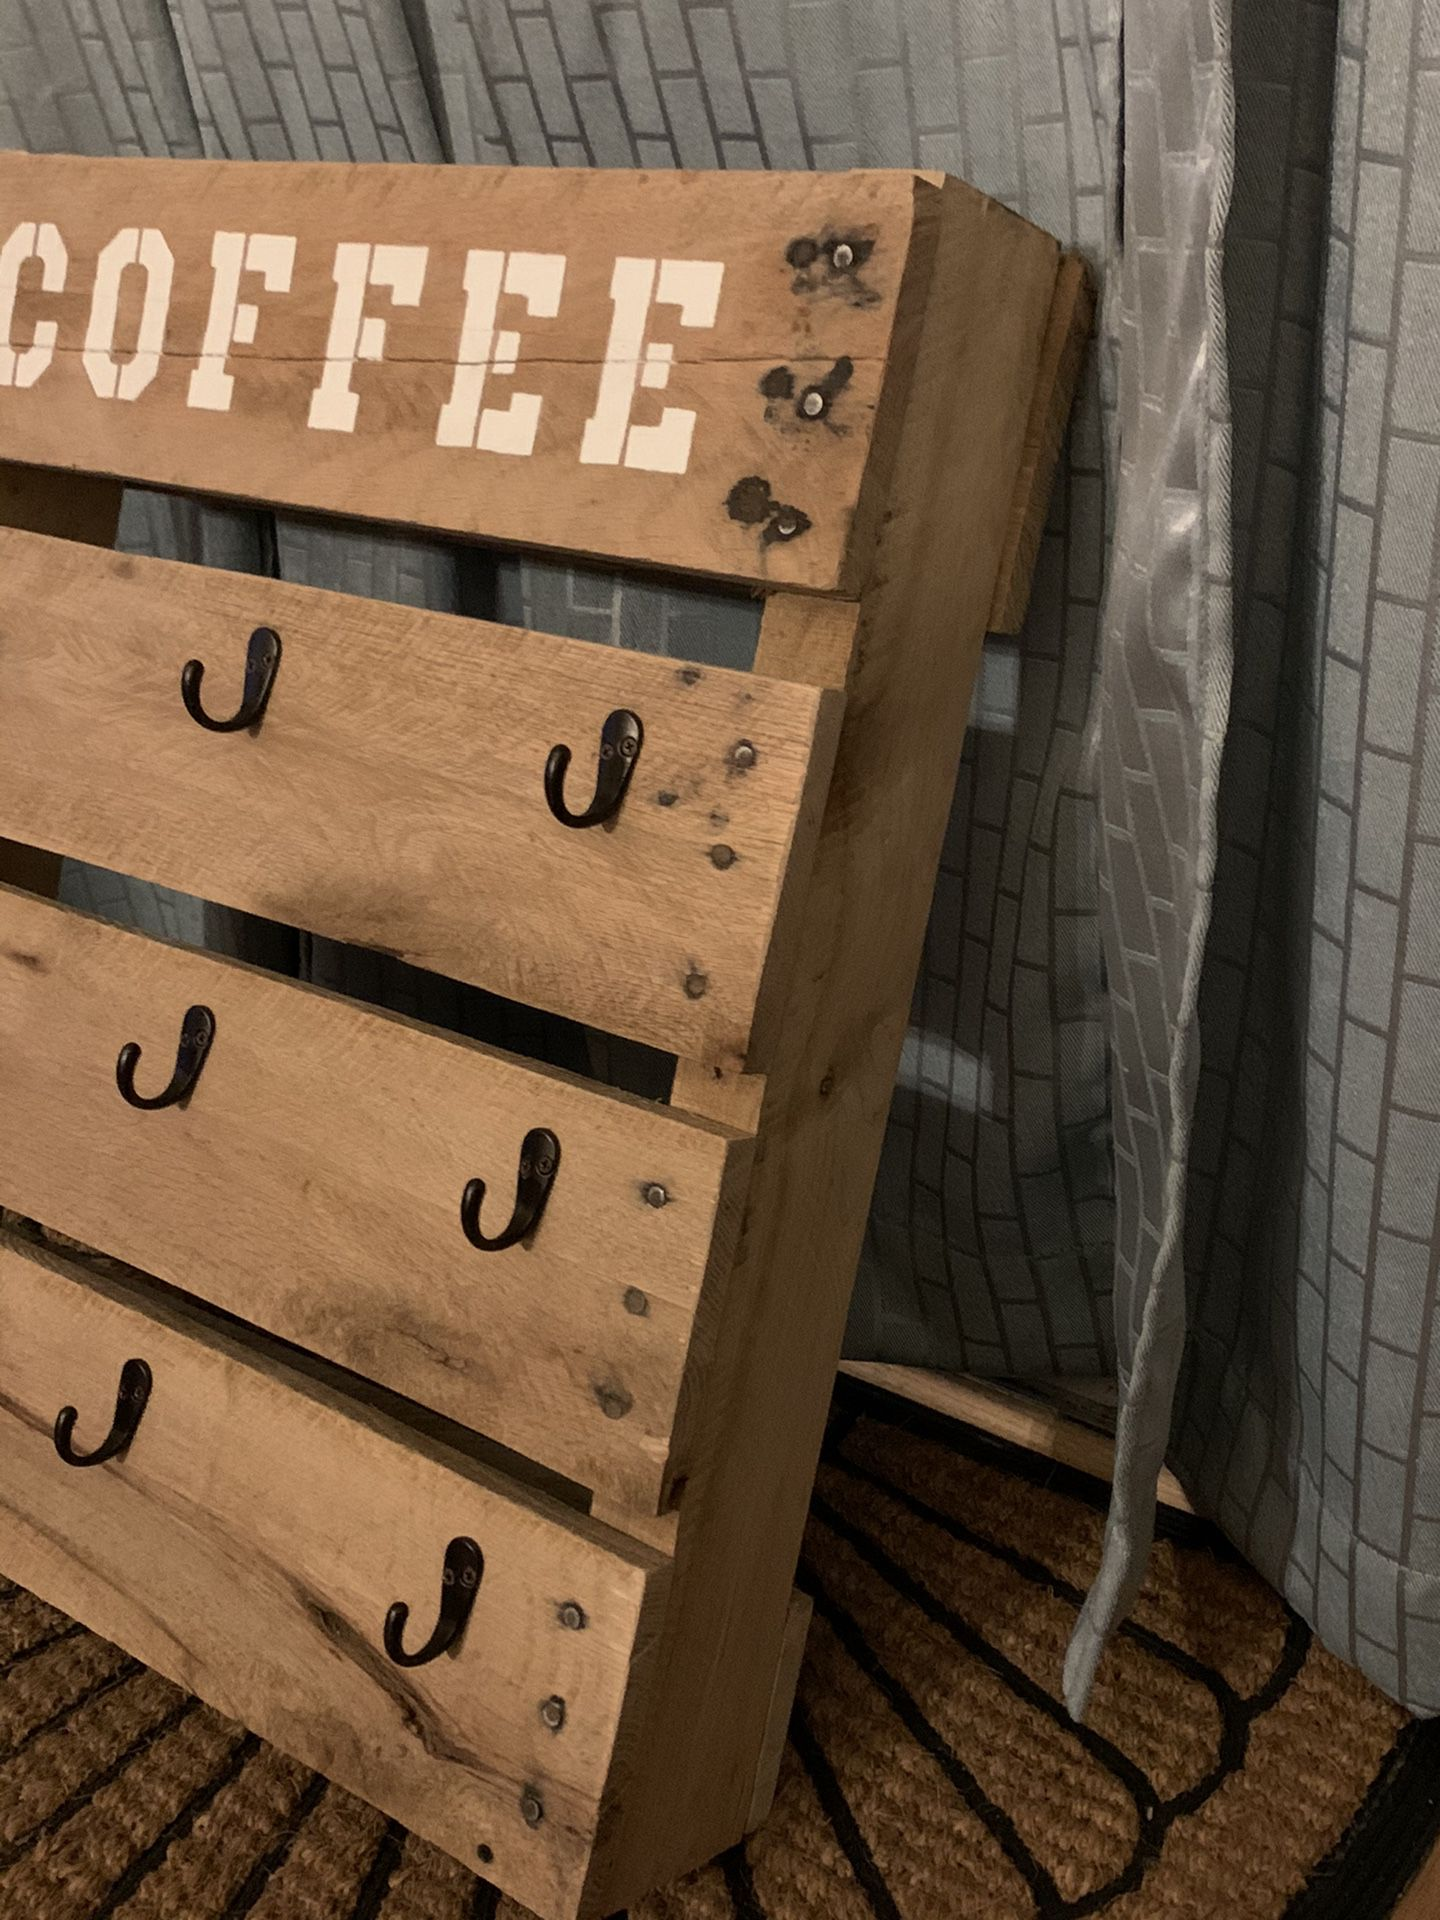 Homemade 9 cup coffee cup holder